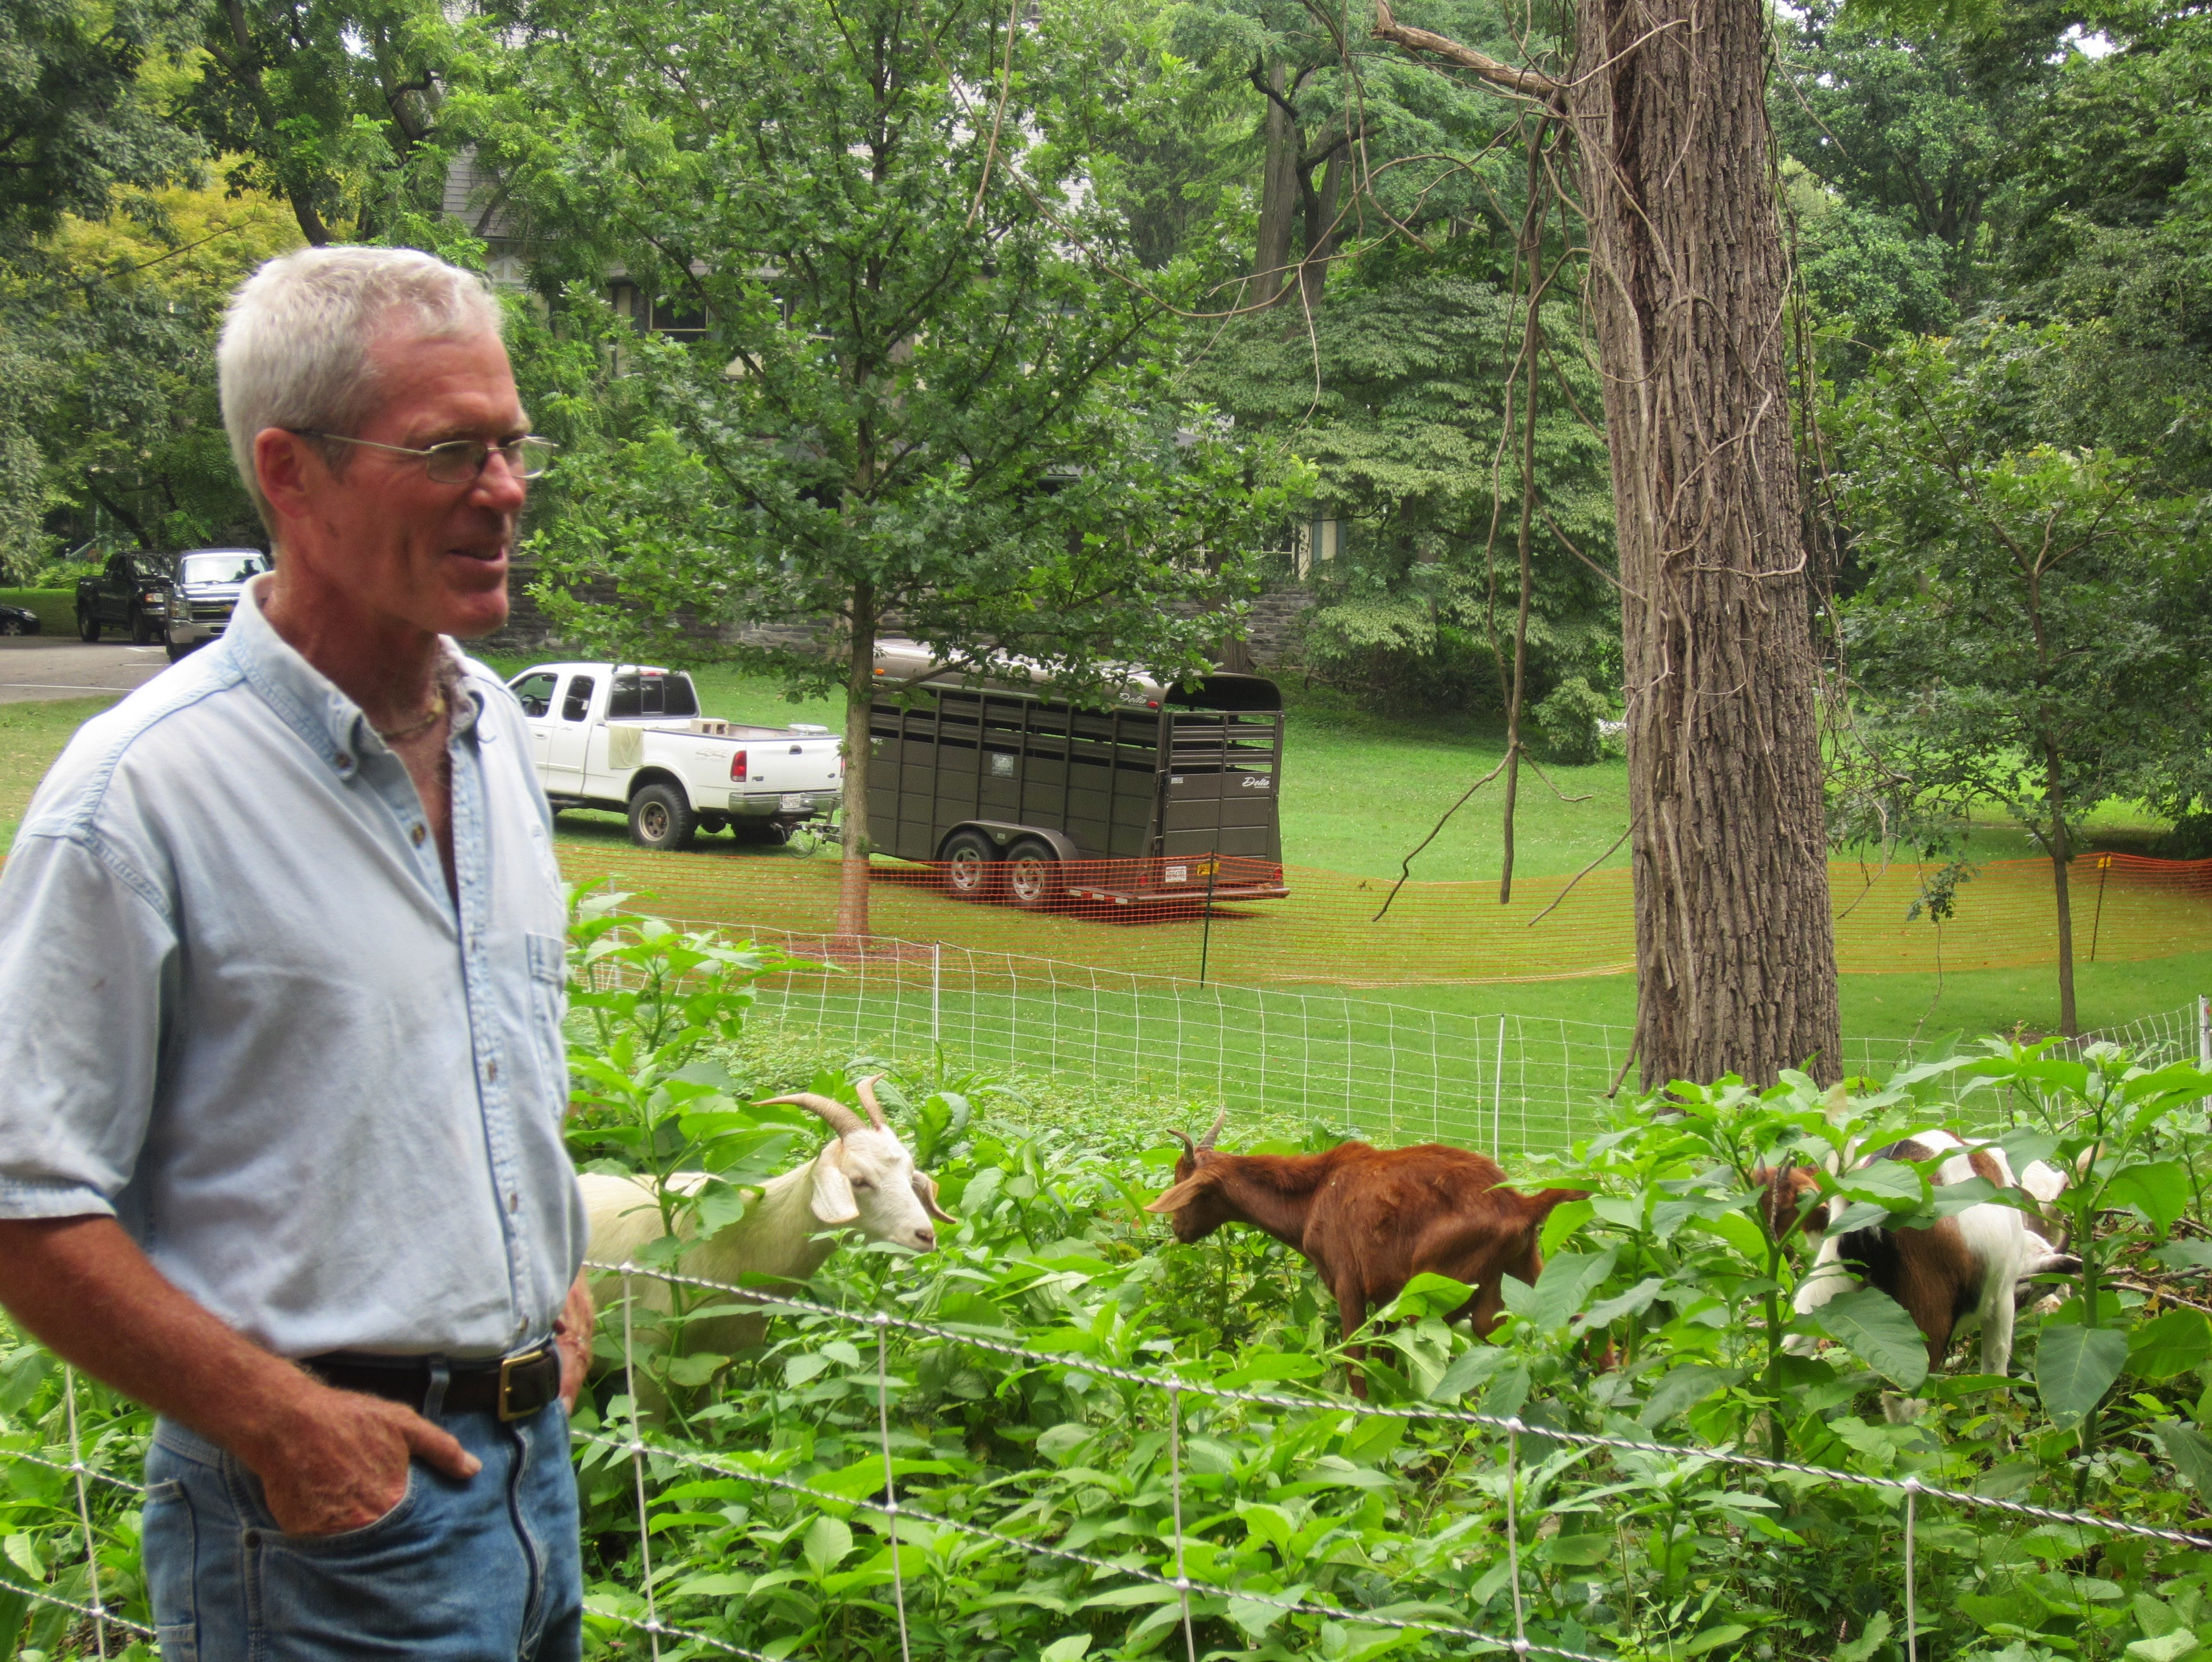 Brian Knox, the supervising forester of Eco-Goats, watches as goats help clear a woody area on Haverford College's campus.